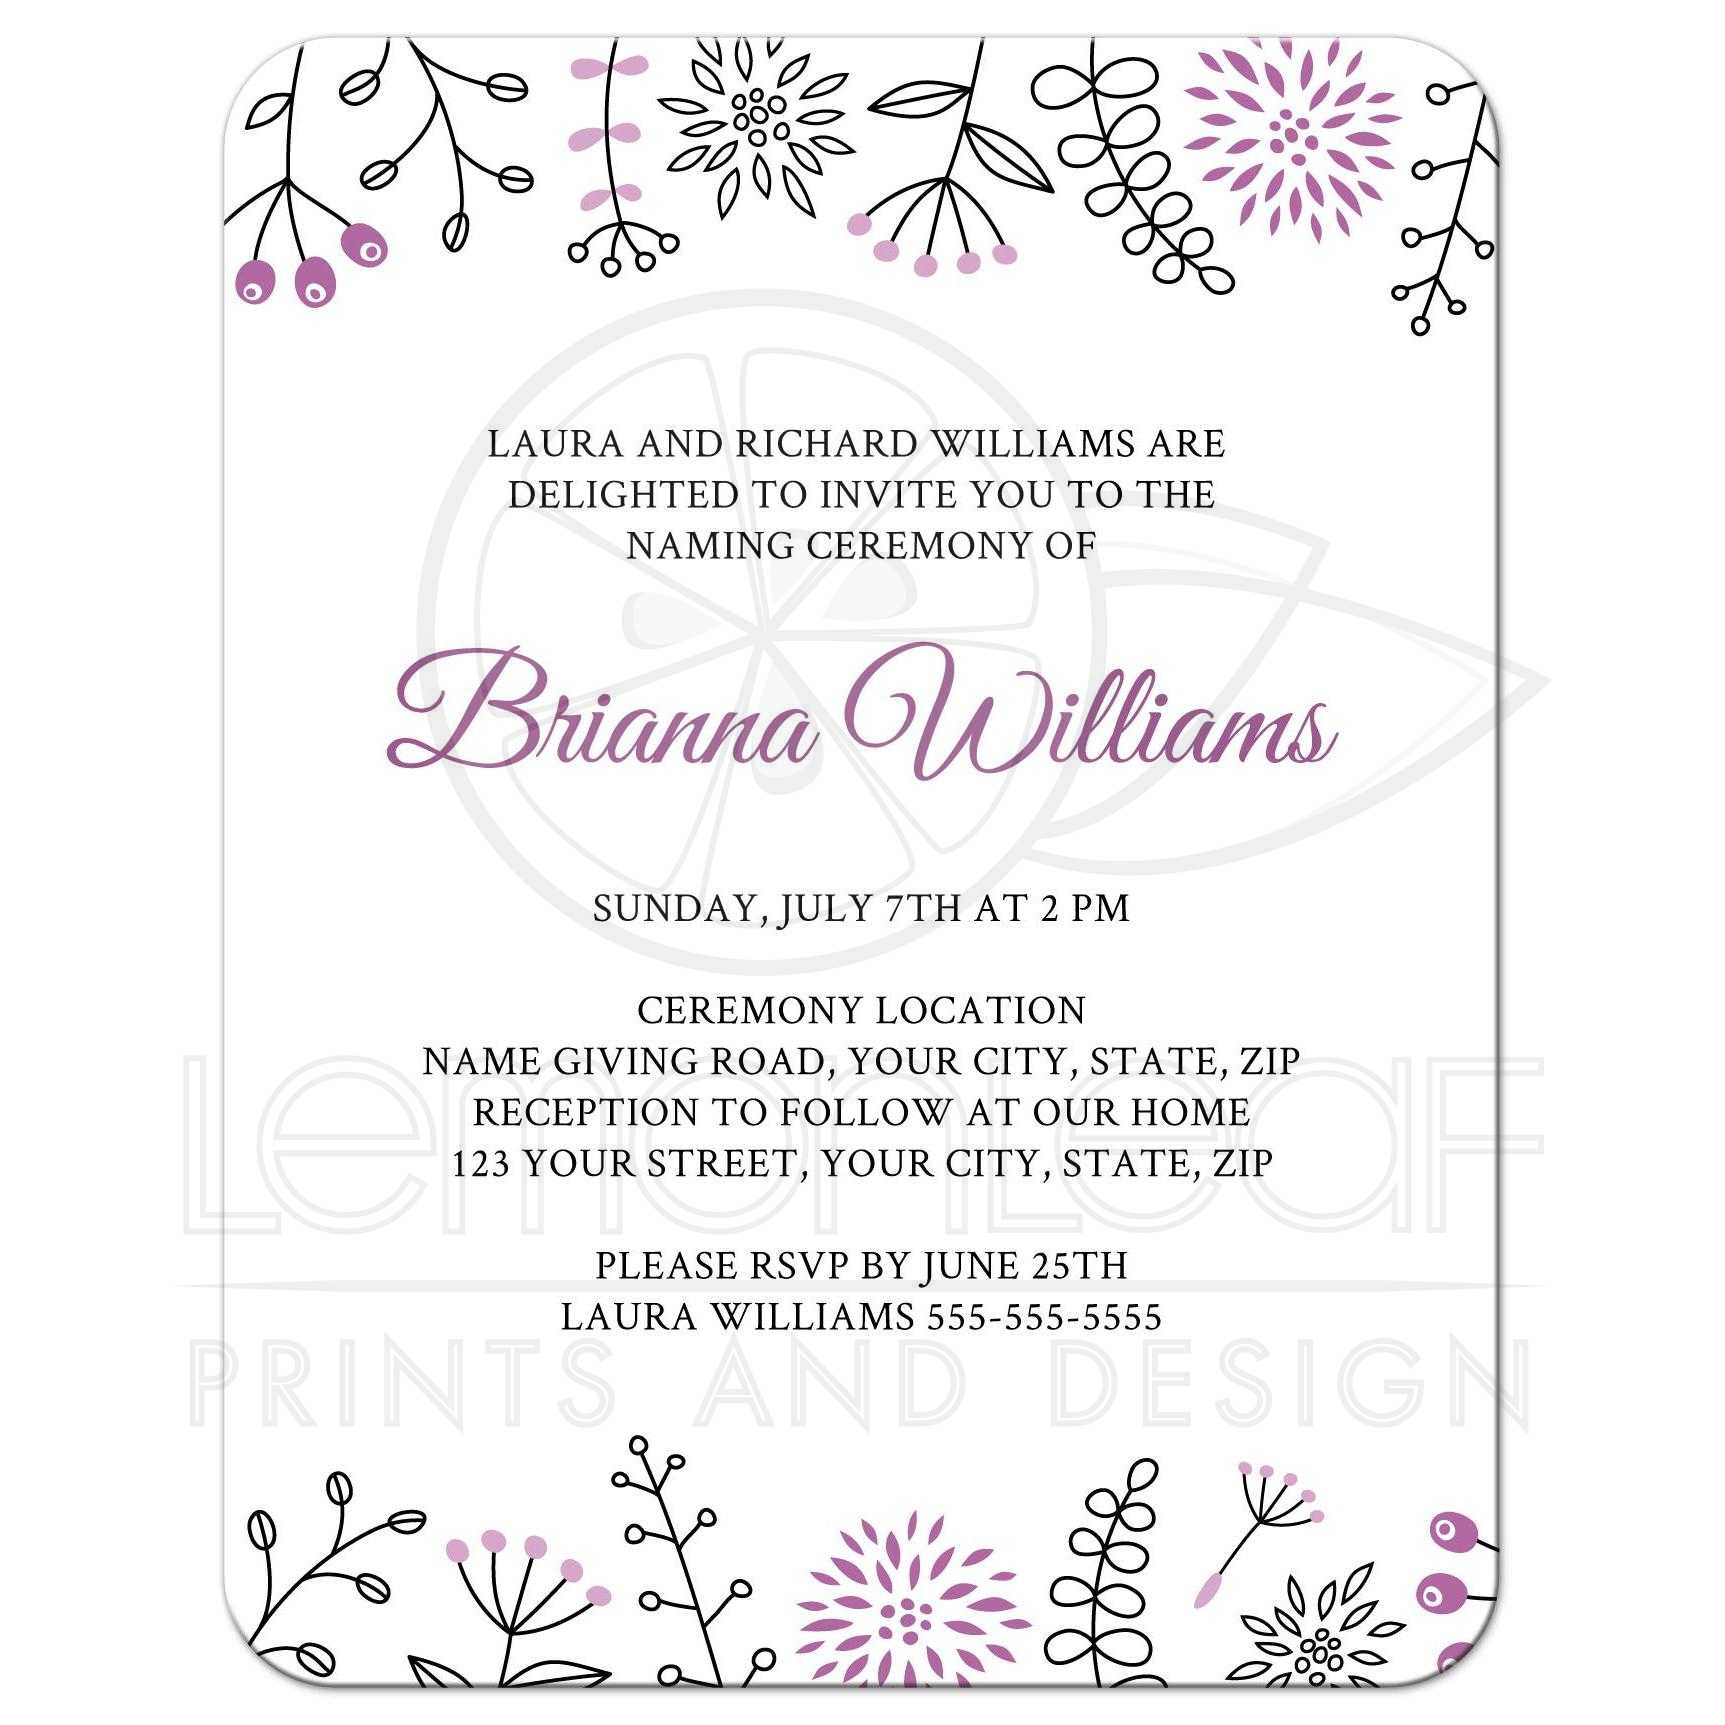 Namingname giving ceremony invitation with cute and modern floral cute naming ceremony invite for baby girls with modern floral border design kristyandbryce Images